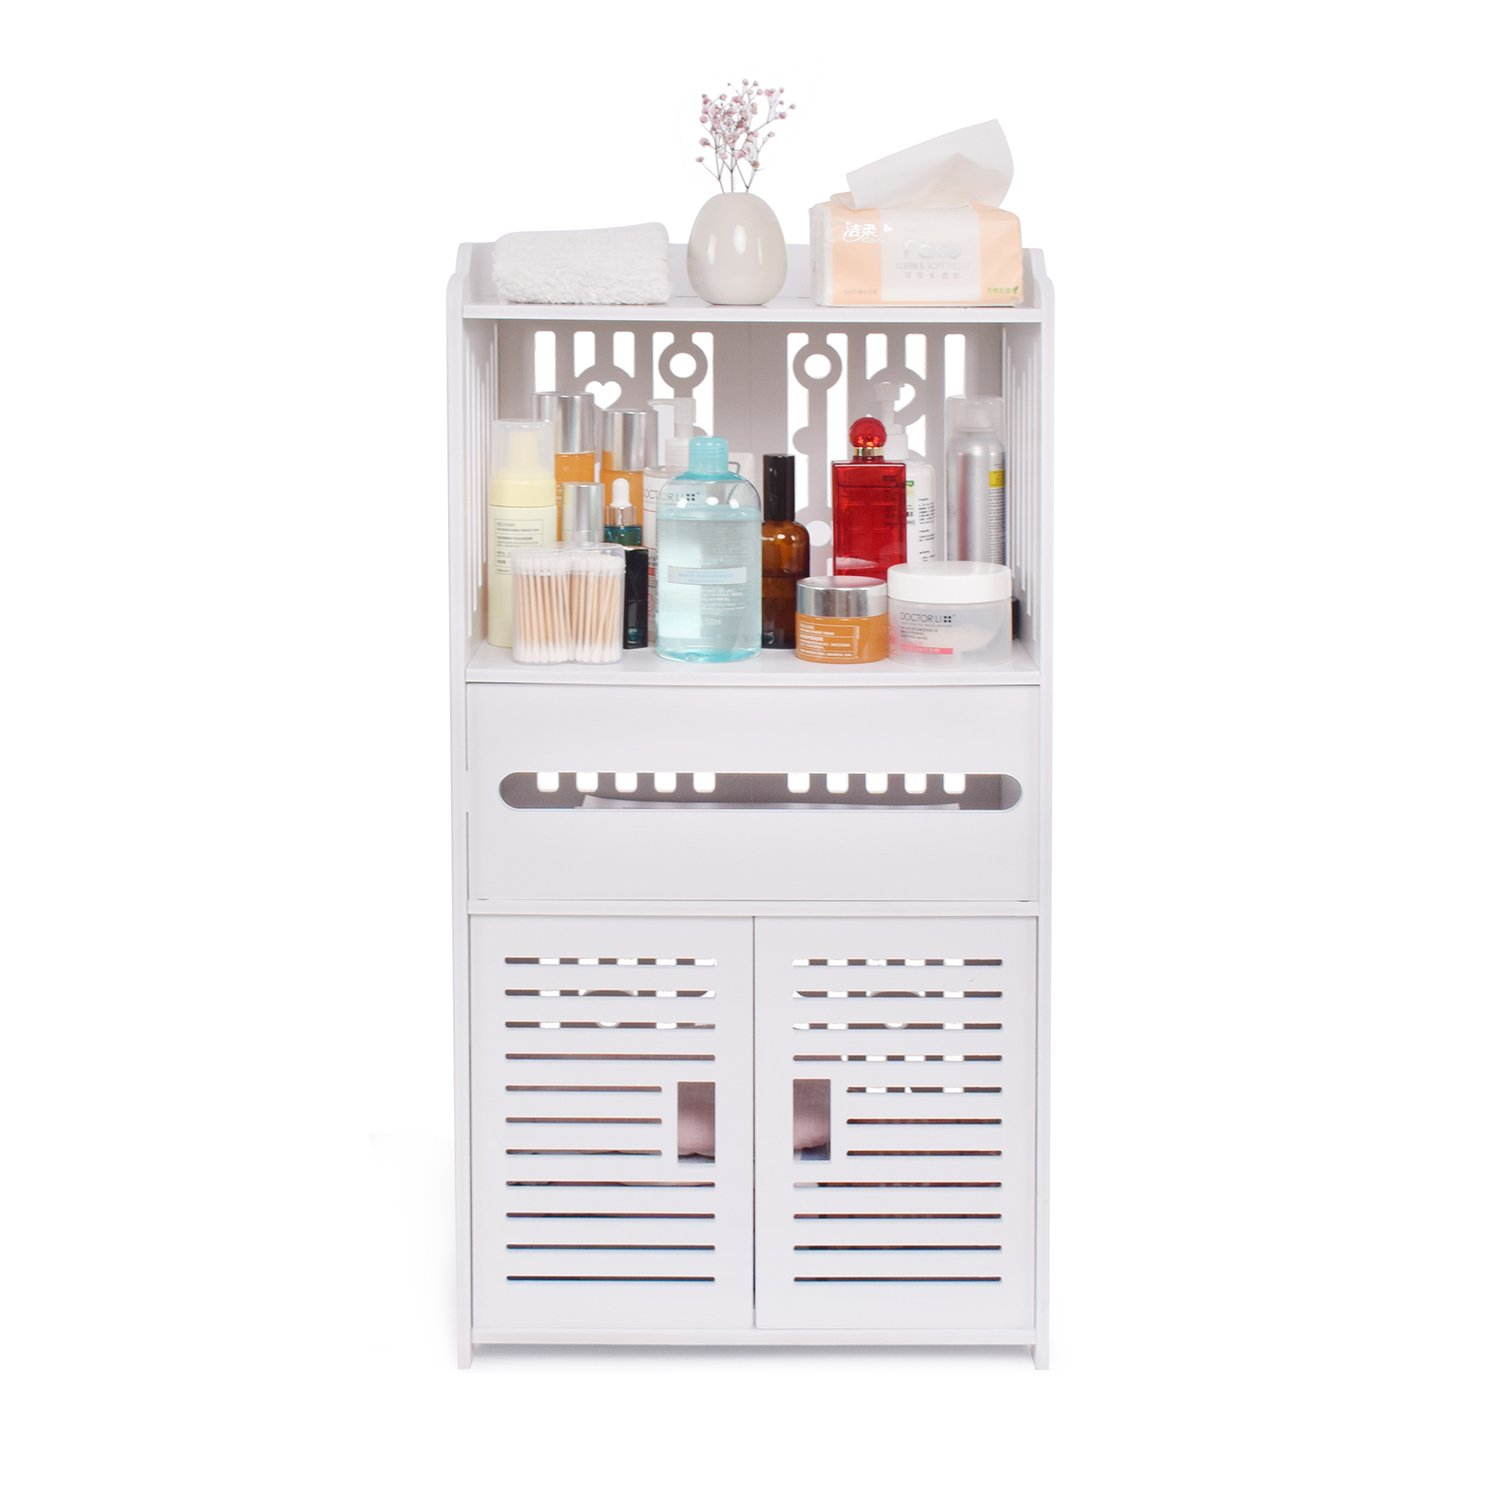 aimu Waterproof 2 Door Bathroom Cabinets,Furniture for Bathroom and Toilet,White QQXWJJYP